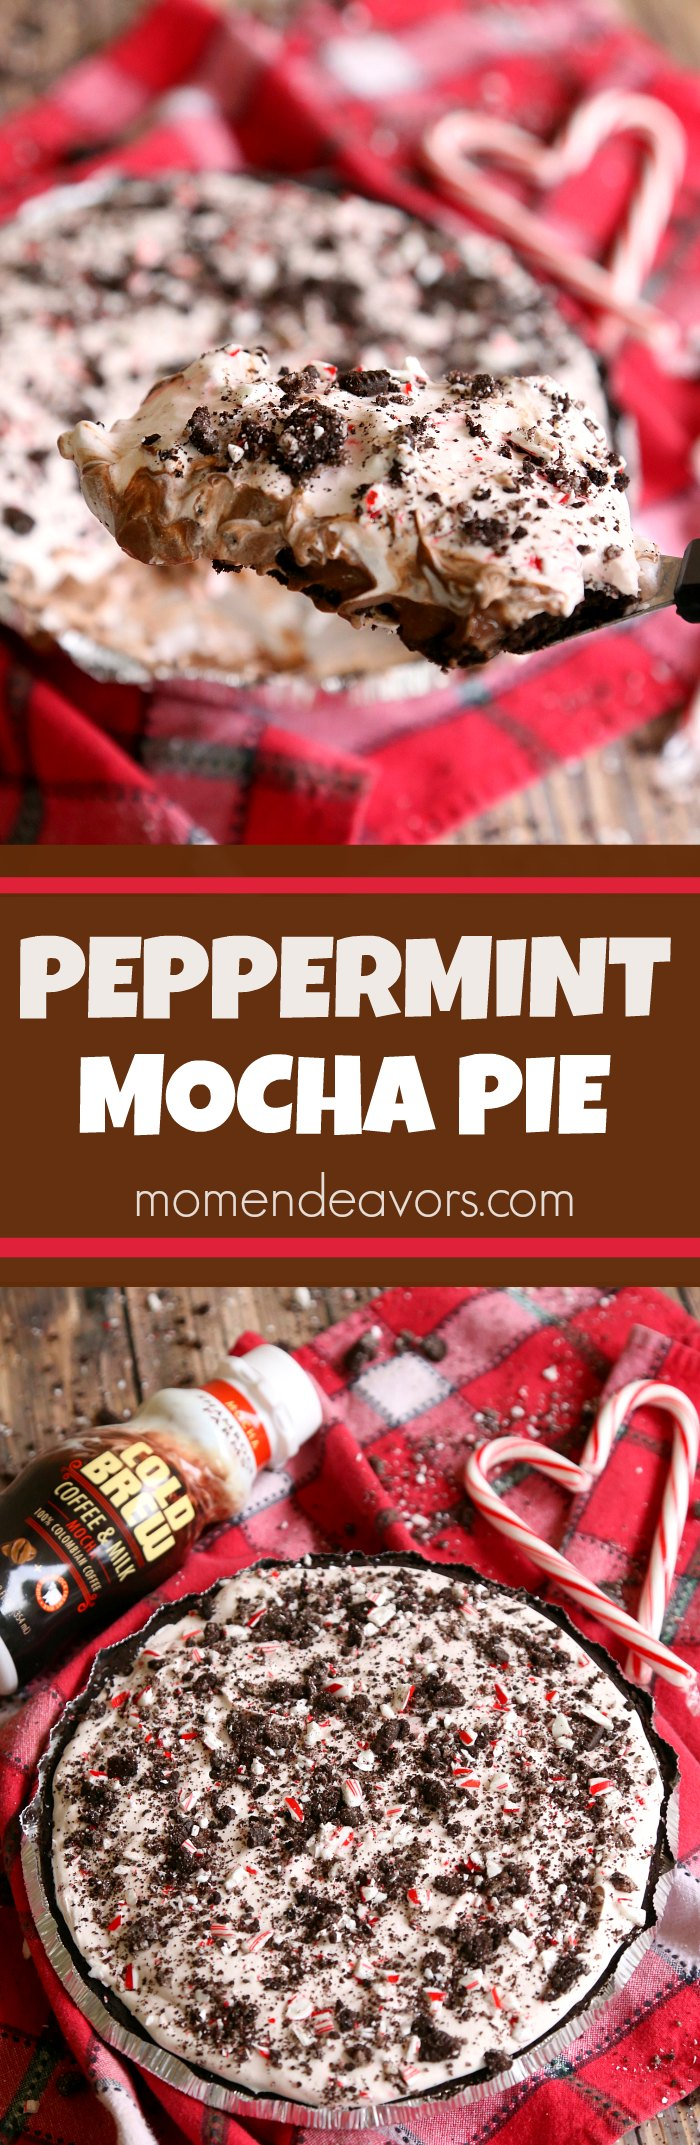 easy-no-bake-peppermint-mocha-pie